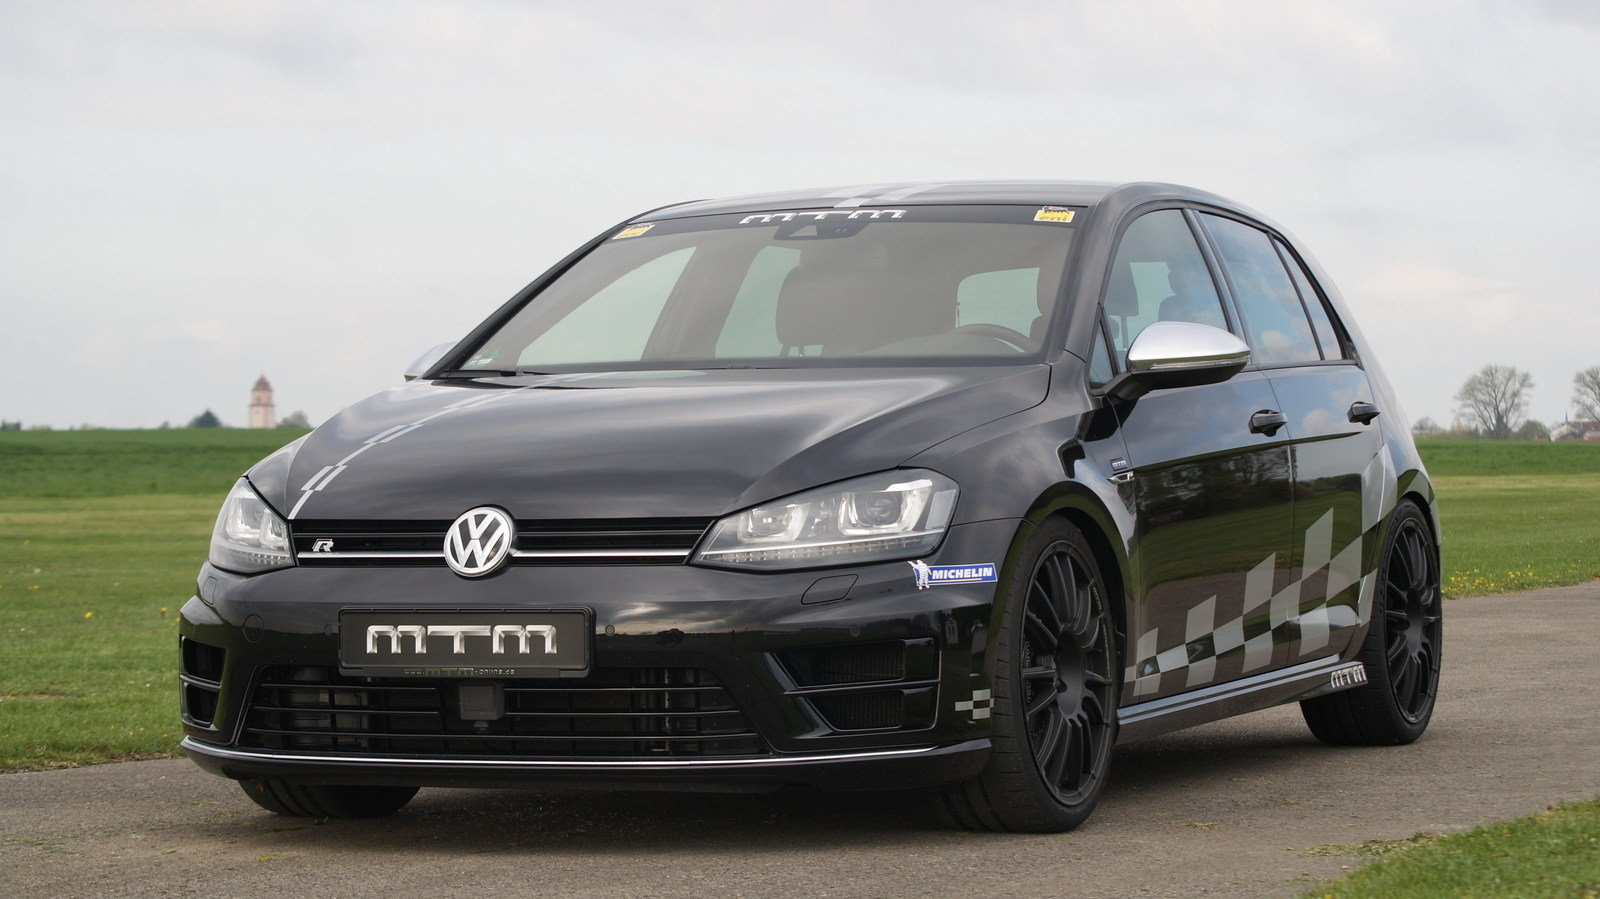 2014 volkswagen golf 7 r 4motion by mtm review top speed. Black Bedroom Furniture Sets. Home Design Ideas